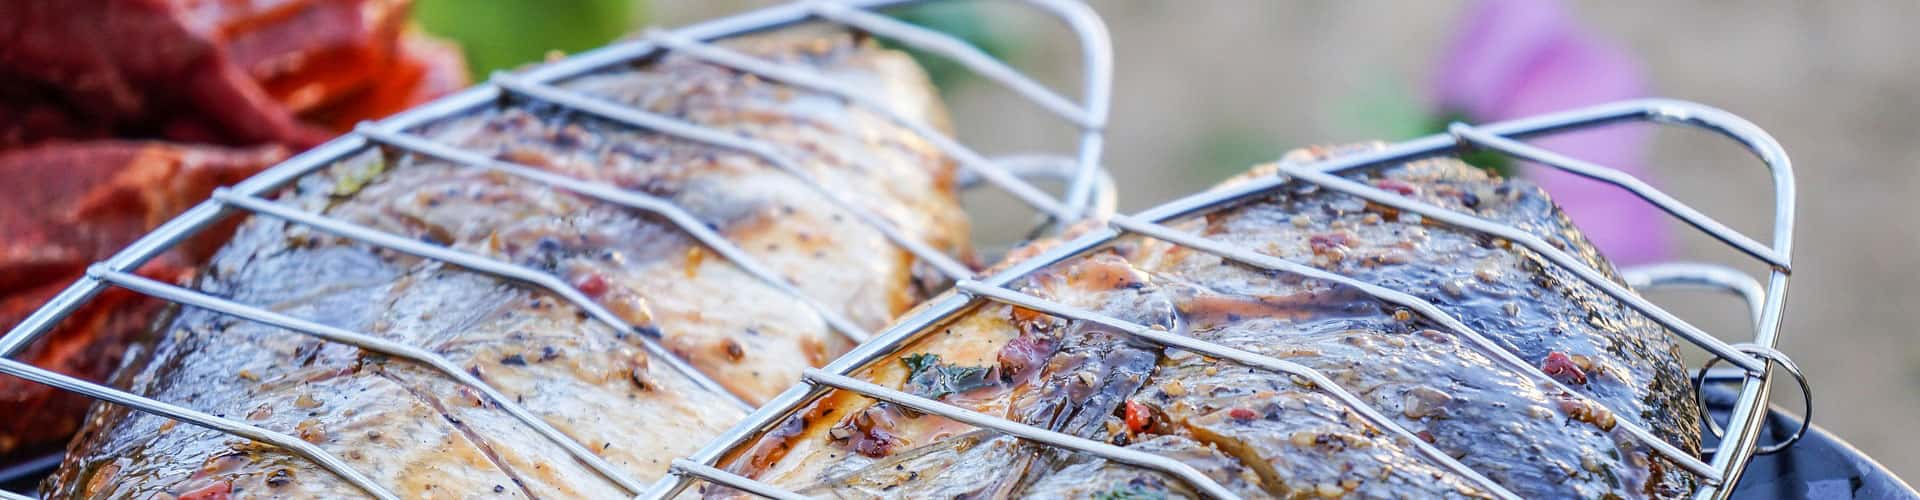 Photo of finfish being grilled.